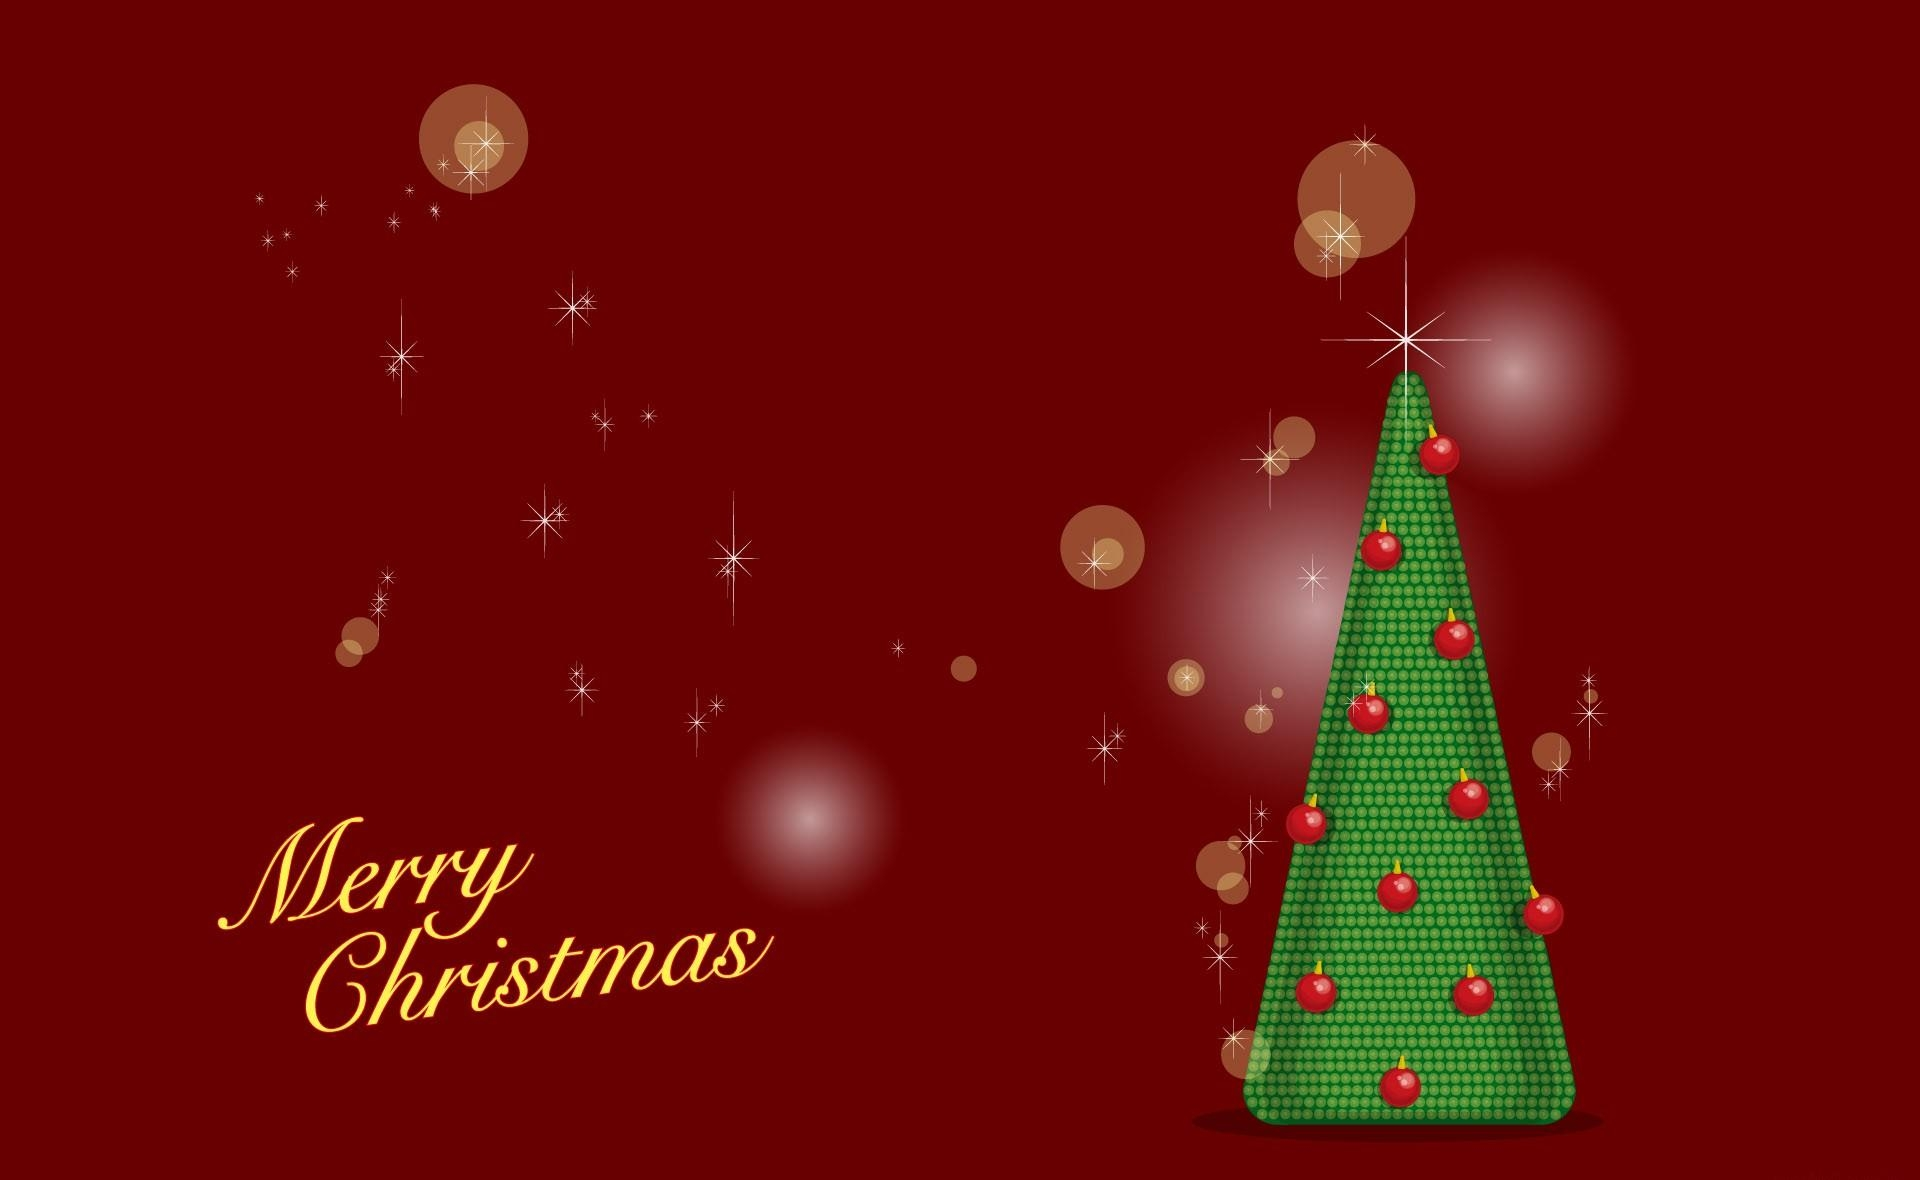 123473 download wallpaper Holidays, Christmas Tree, Toys, Balls, Sparks, Christmas screensavers and pictures for free